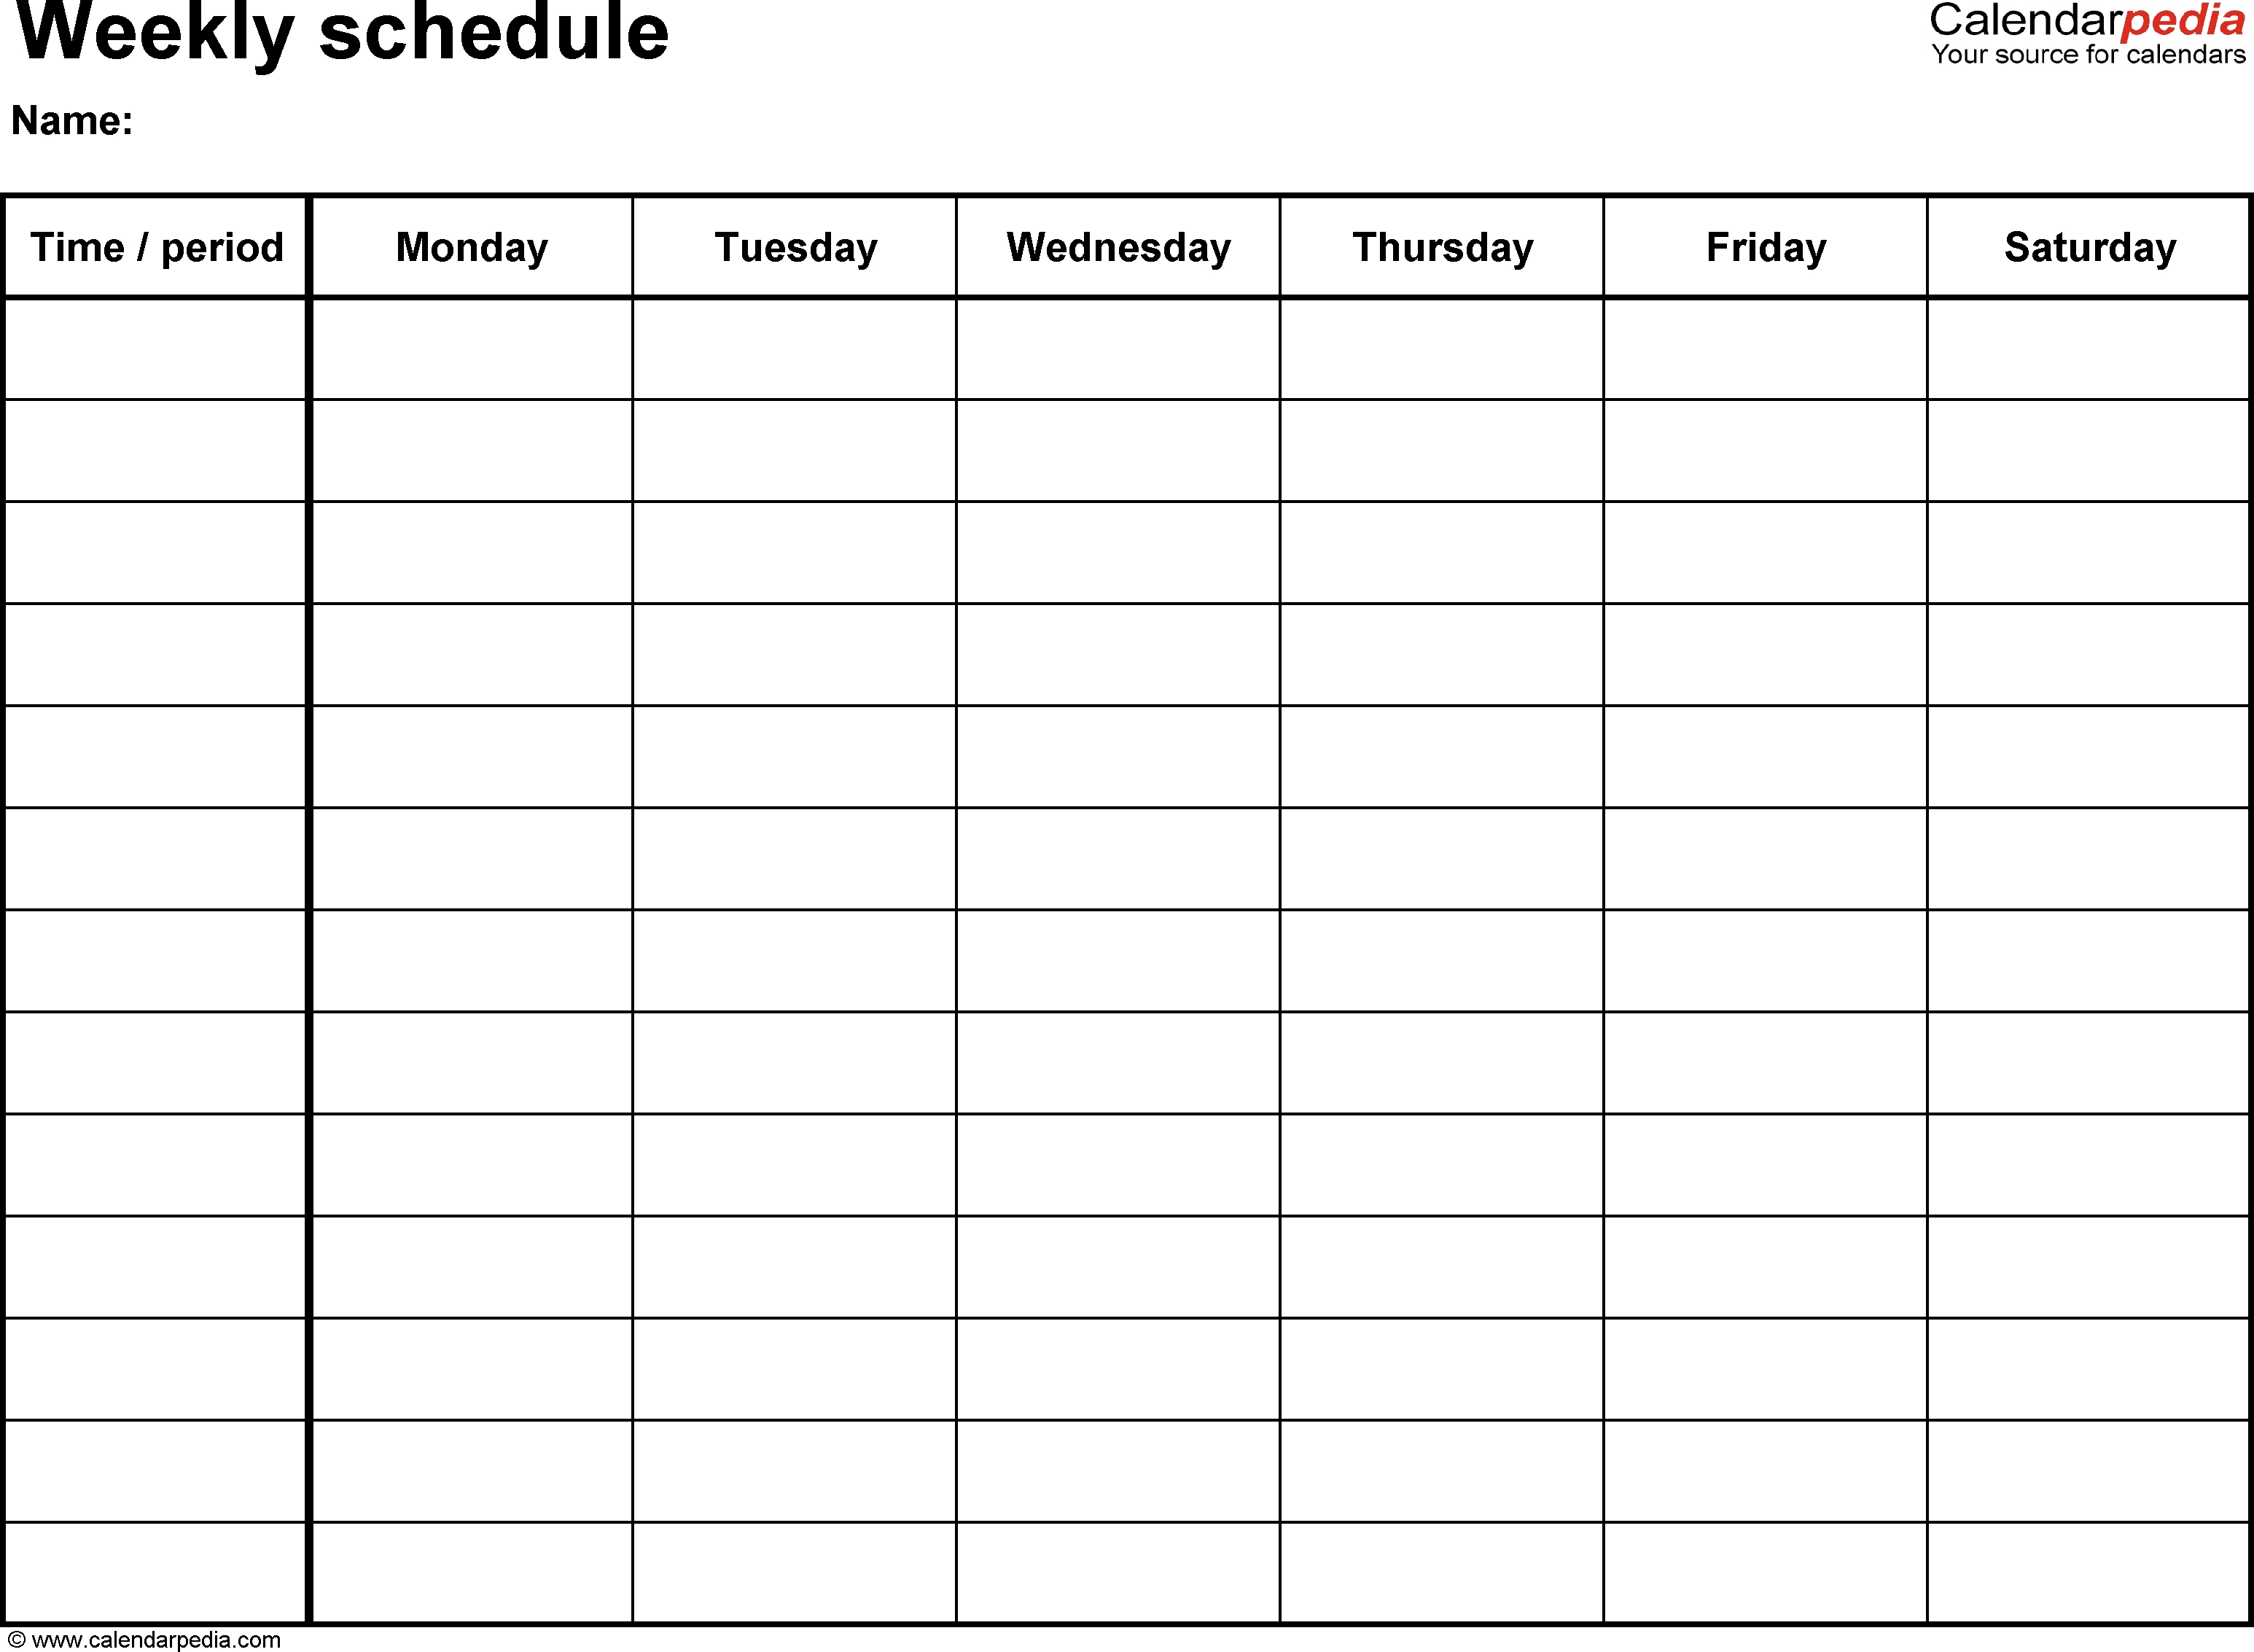 Free Weekly Schedule Templates For Pdf - 18 Templates-A4 Monthly Calendar Template Print Over 2 Pages Monday Start Free